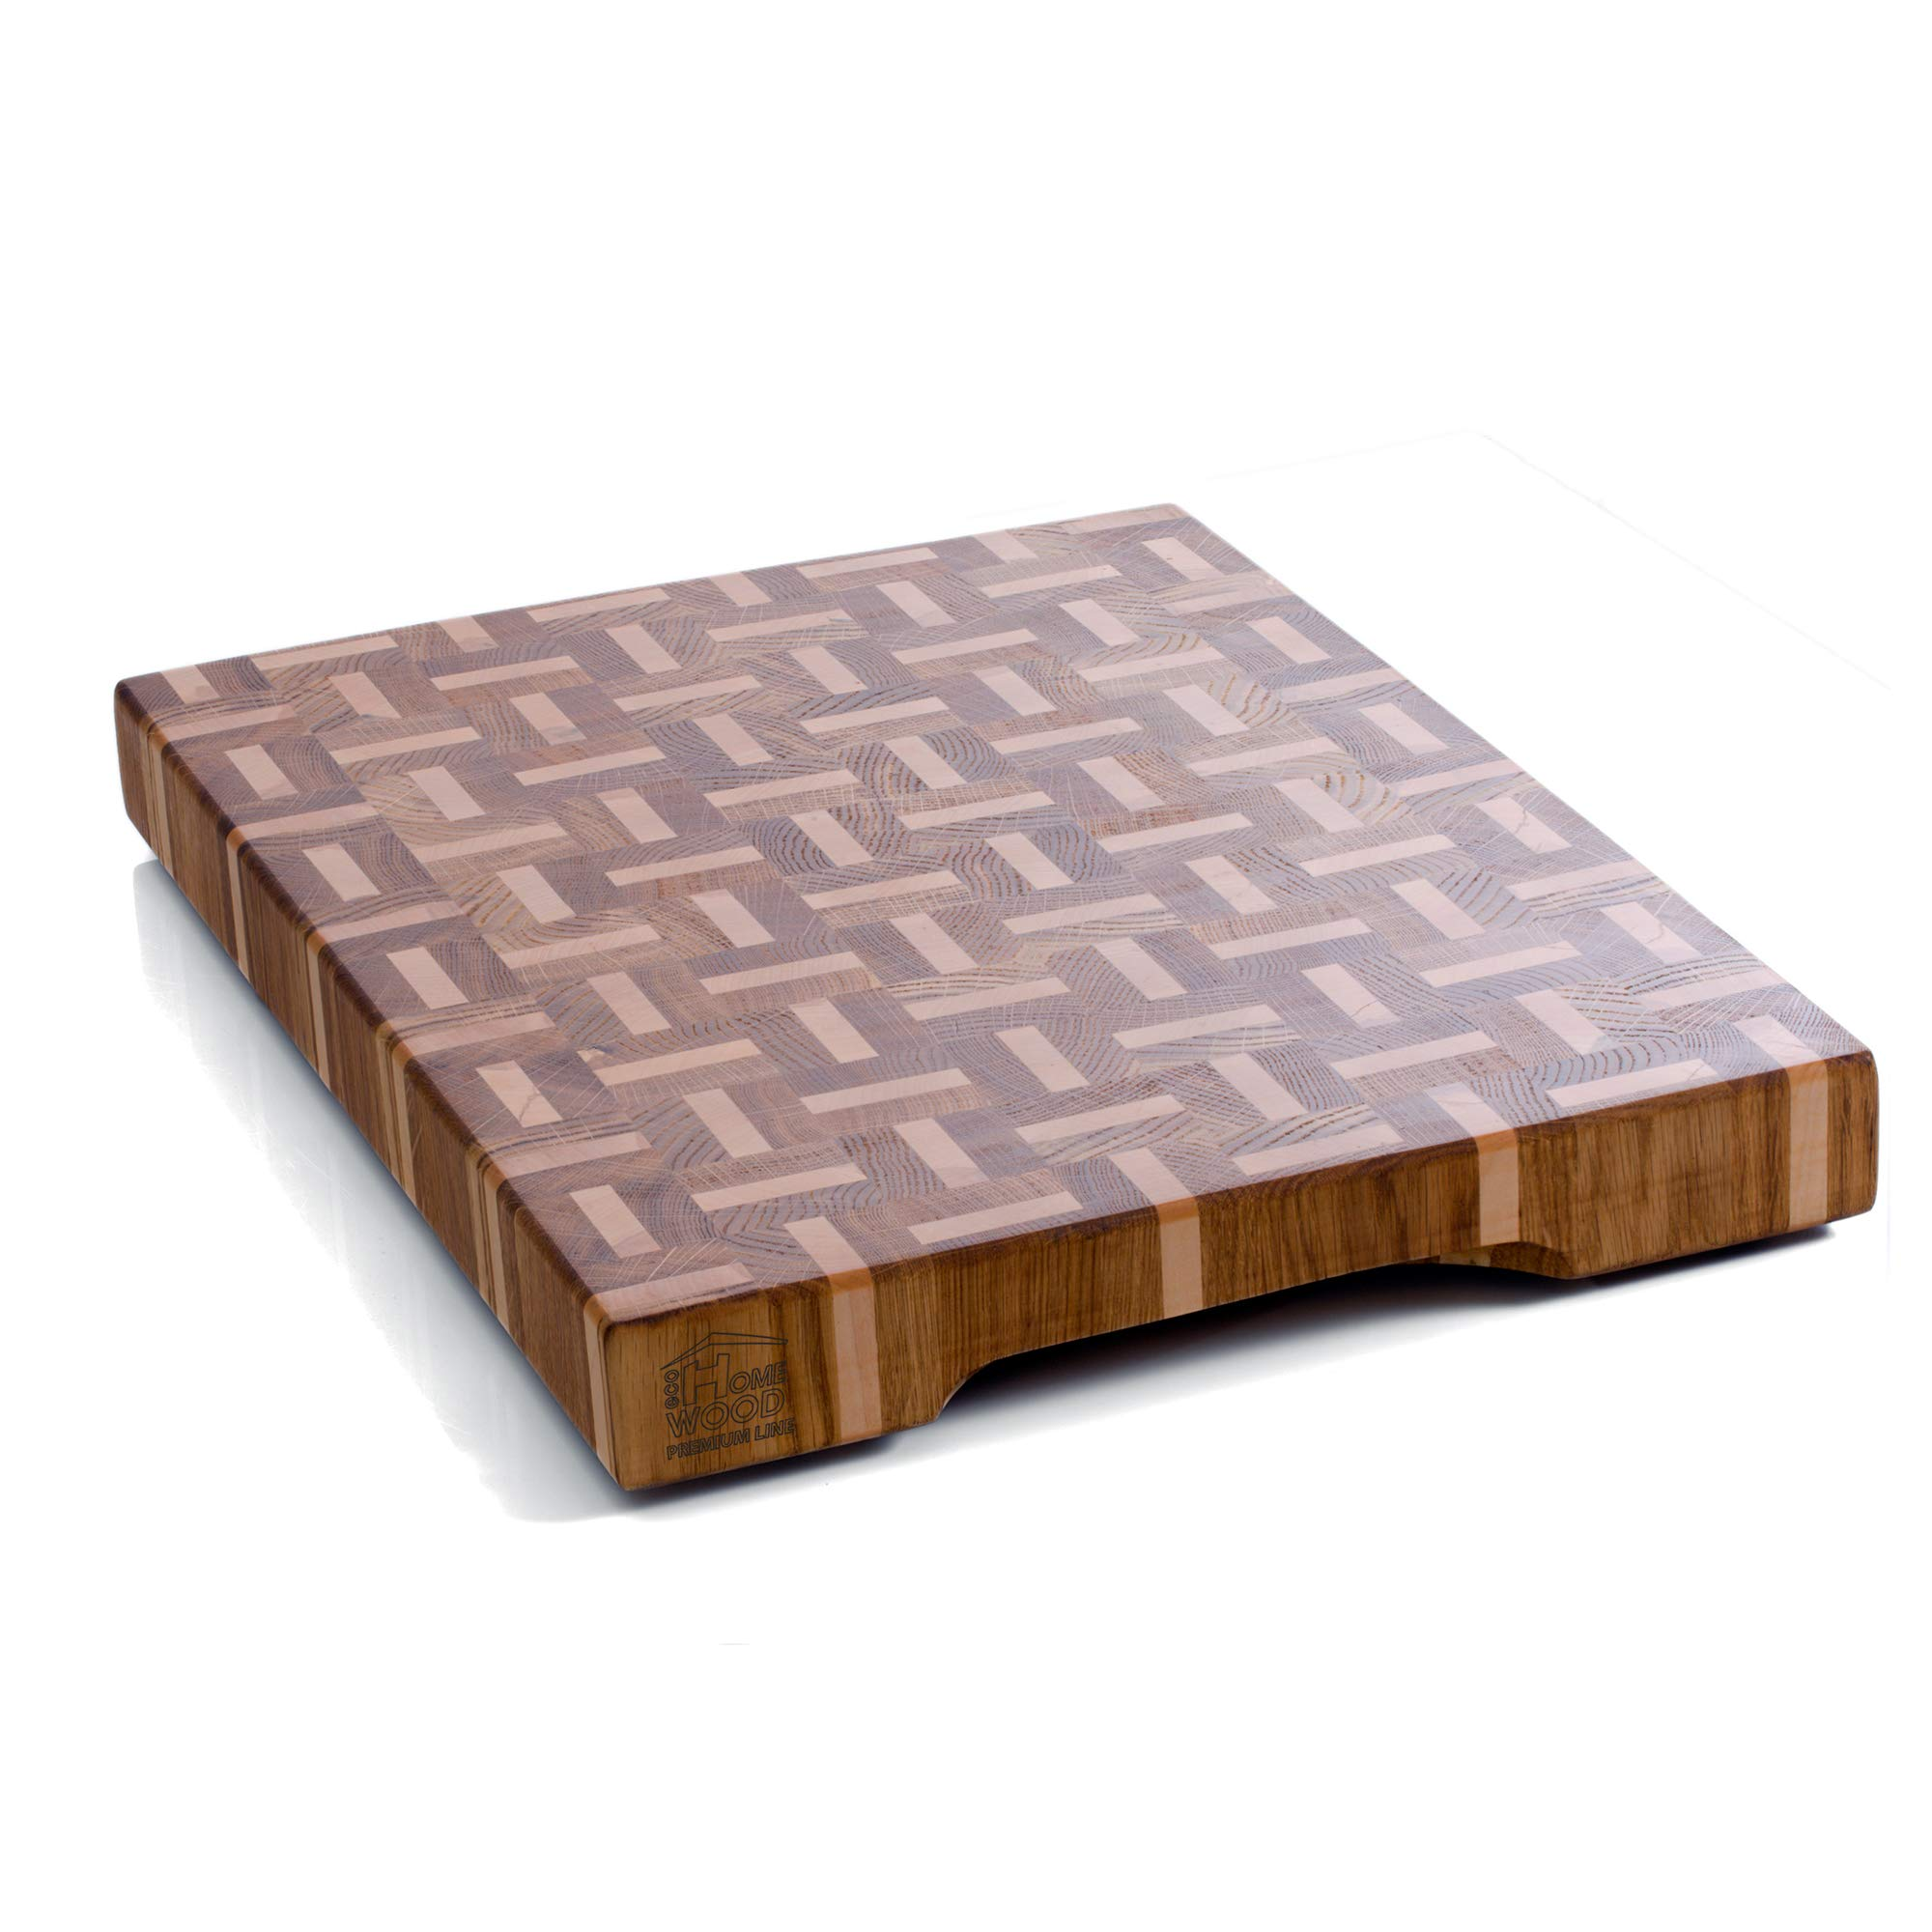 Large wood cutting board with feet - Wood butcher block Cutting board 18x14 End grain cutting board Wooden chopping block |Non slip wood cutting boards for kitchen - Heavy duty Wooden chopping board